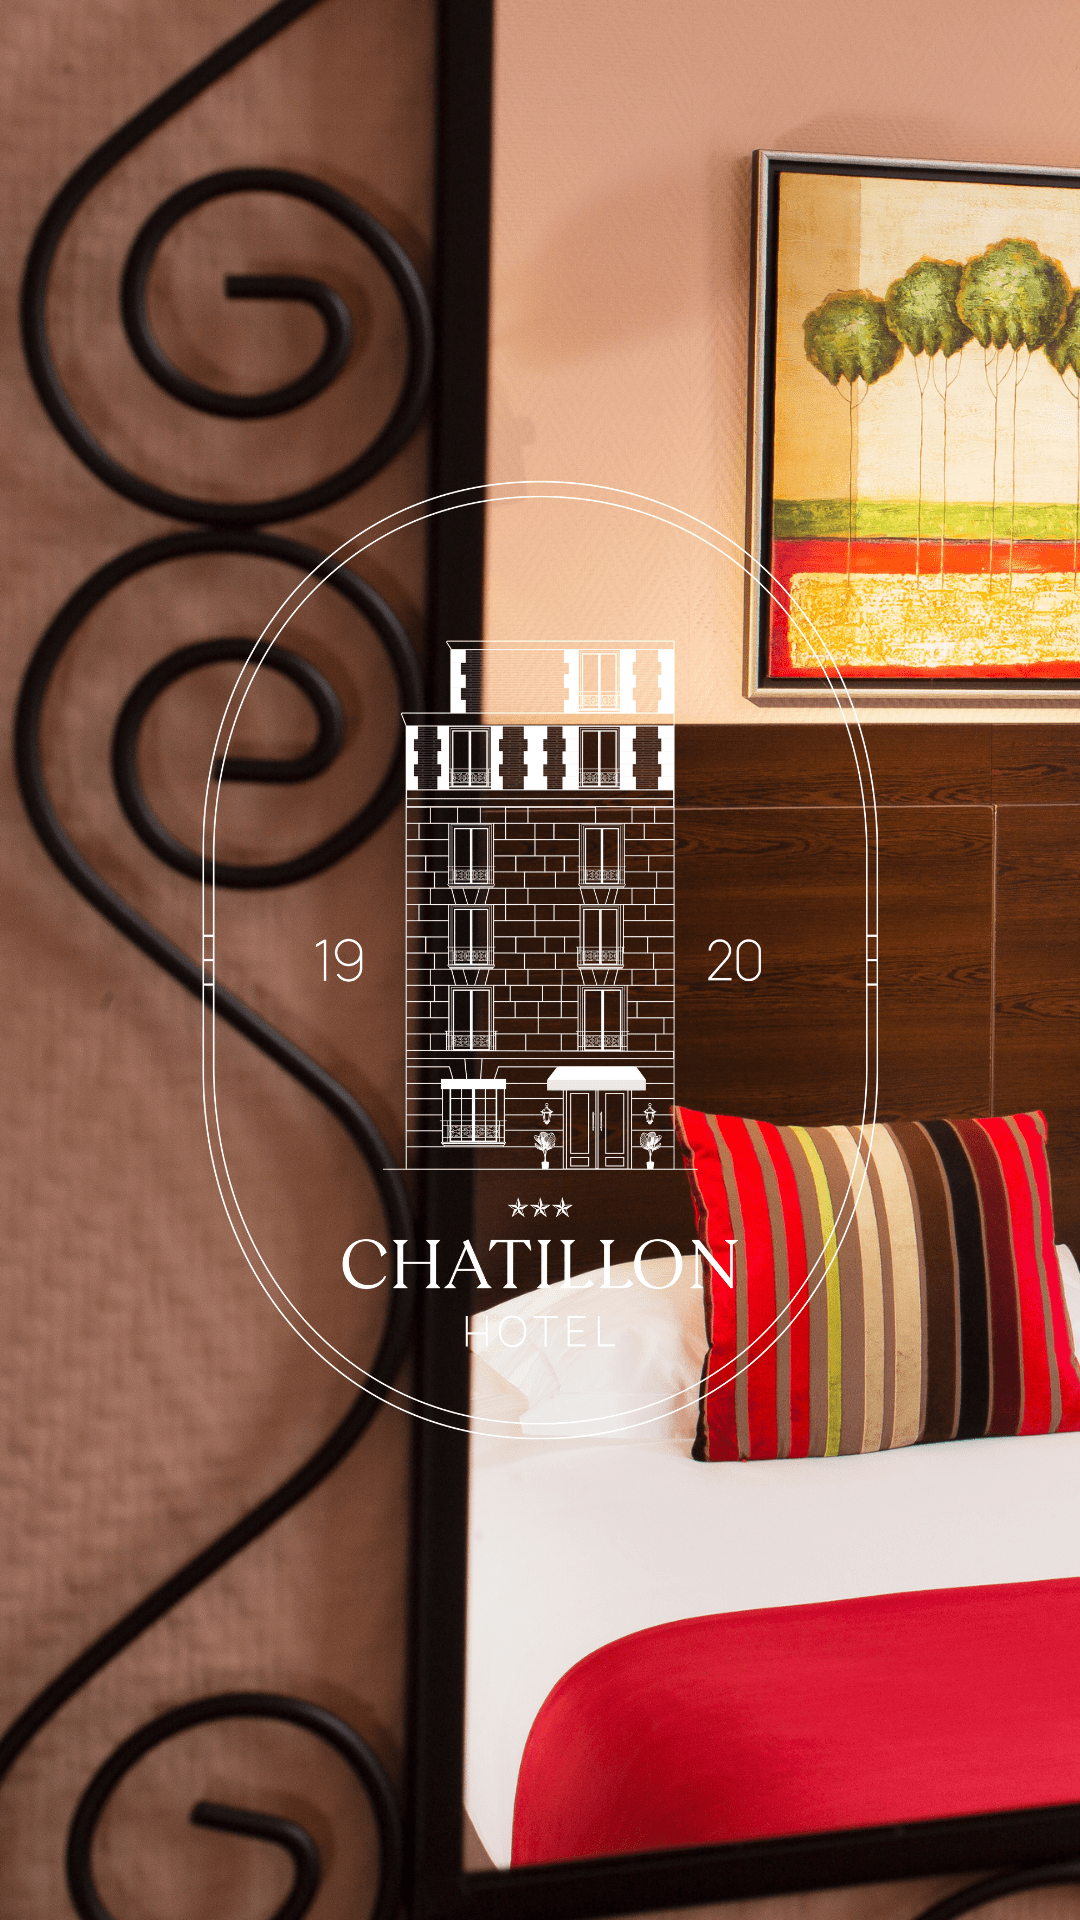 724/CHATILLON/Hotel/1_Couvertures_pics/Slider-home/MOBILE/Hotel_Chatillon_-_Chambre_Mobile.png